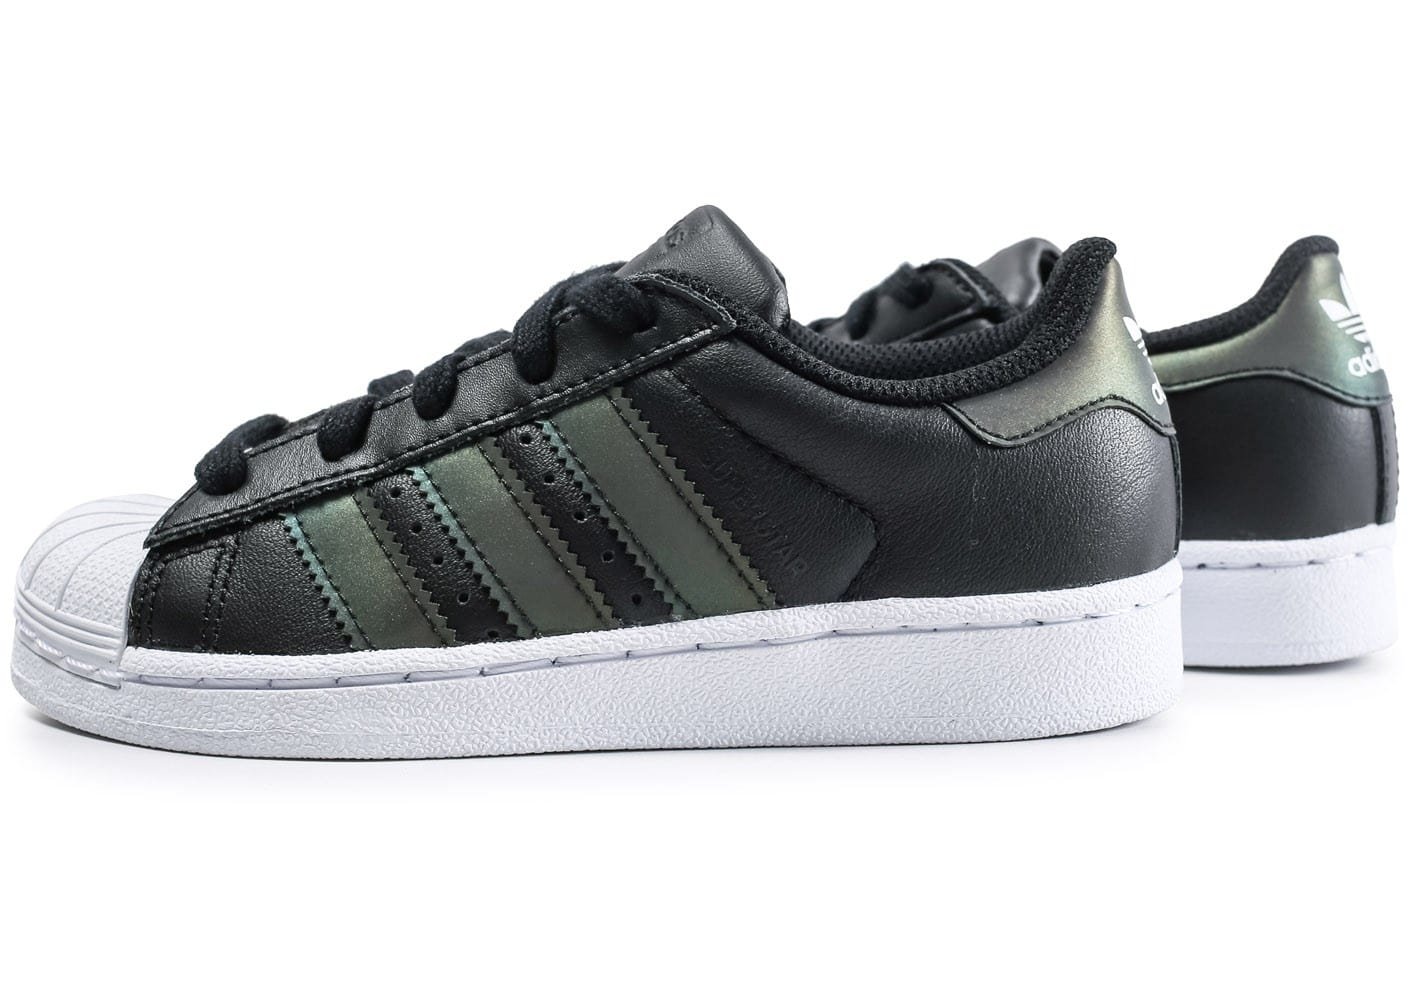 uk availability 1f503 c41e7 Superstar Bébé Garon Chaussures Noir Adidas eBaHO adidas superstar garcon  pas cher ... Photo adidas Superstar I - baskets pour enfant ...